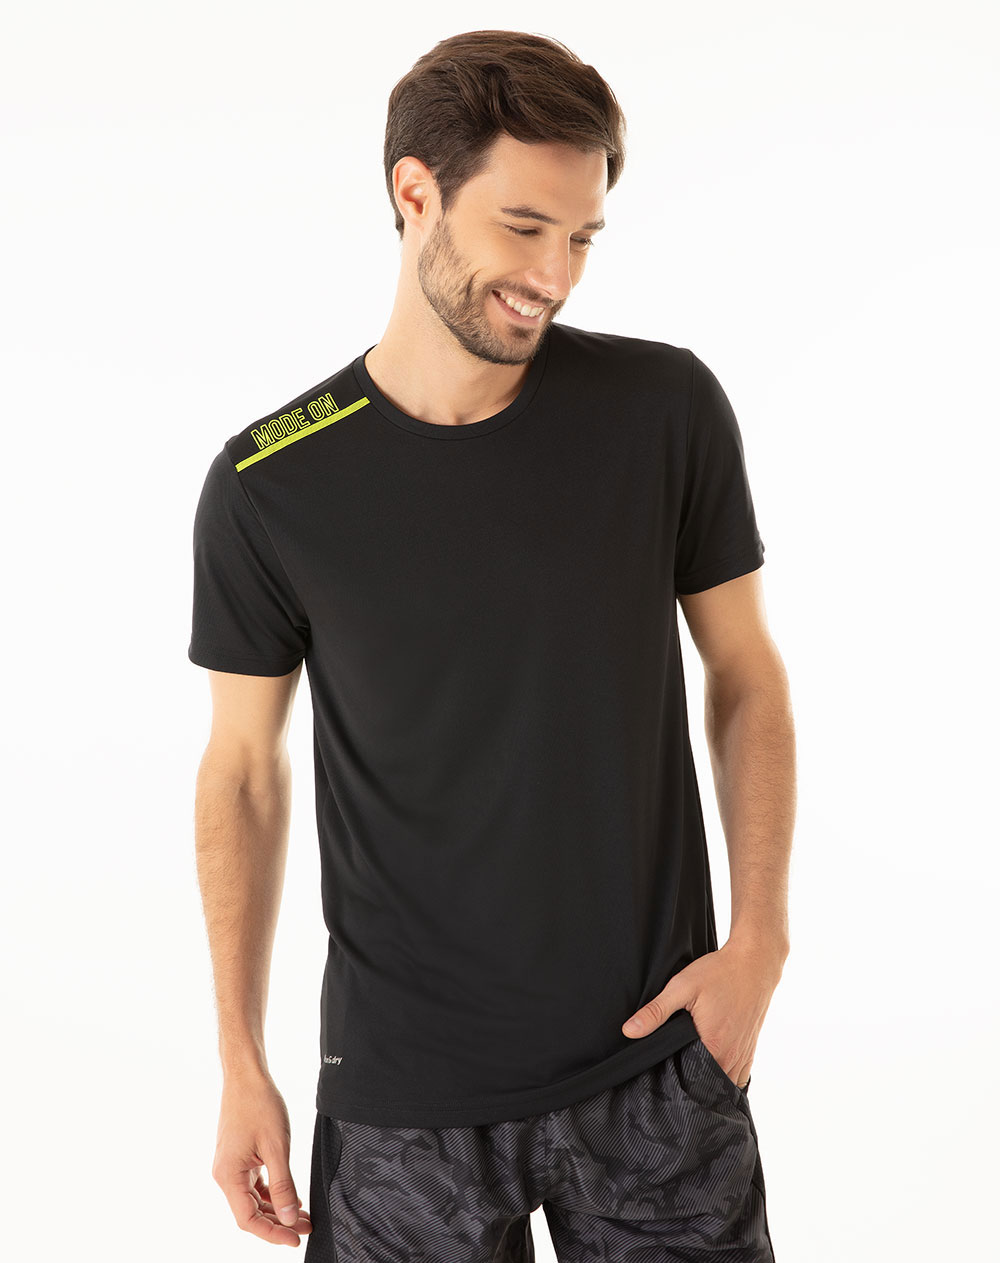 ce5bf62f7f10 Ropa Deportiva para Hombre Gef